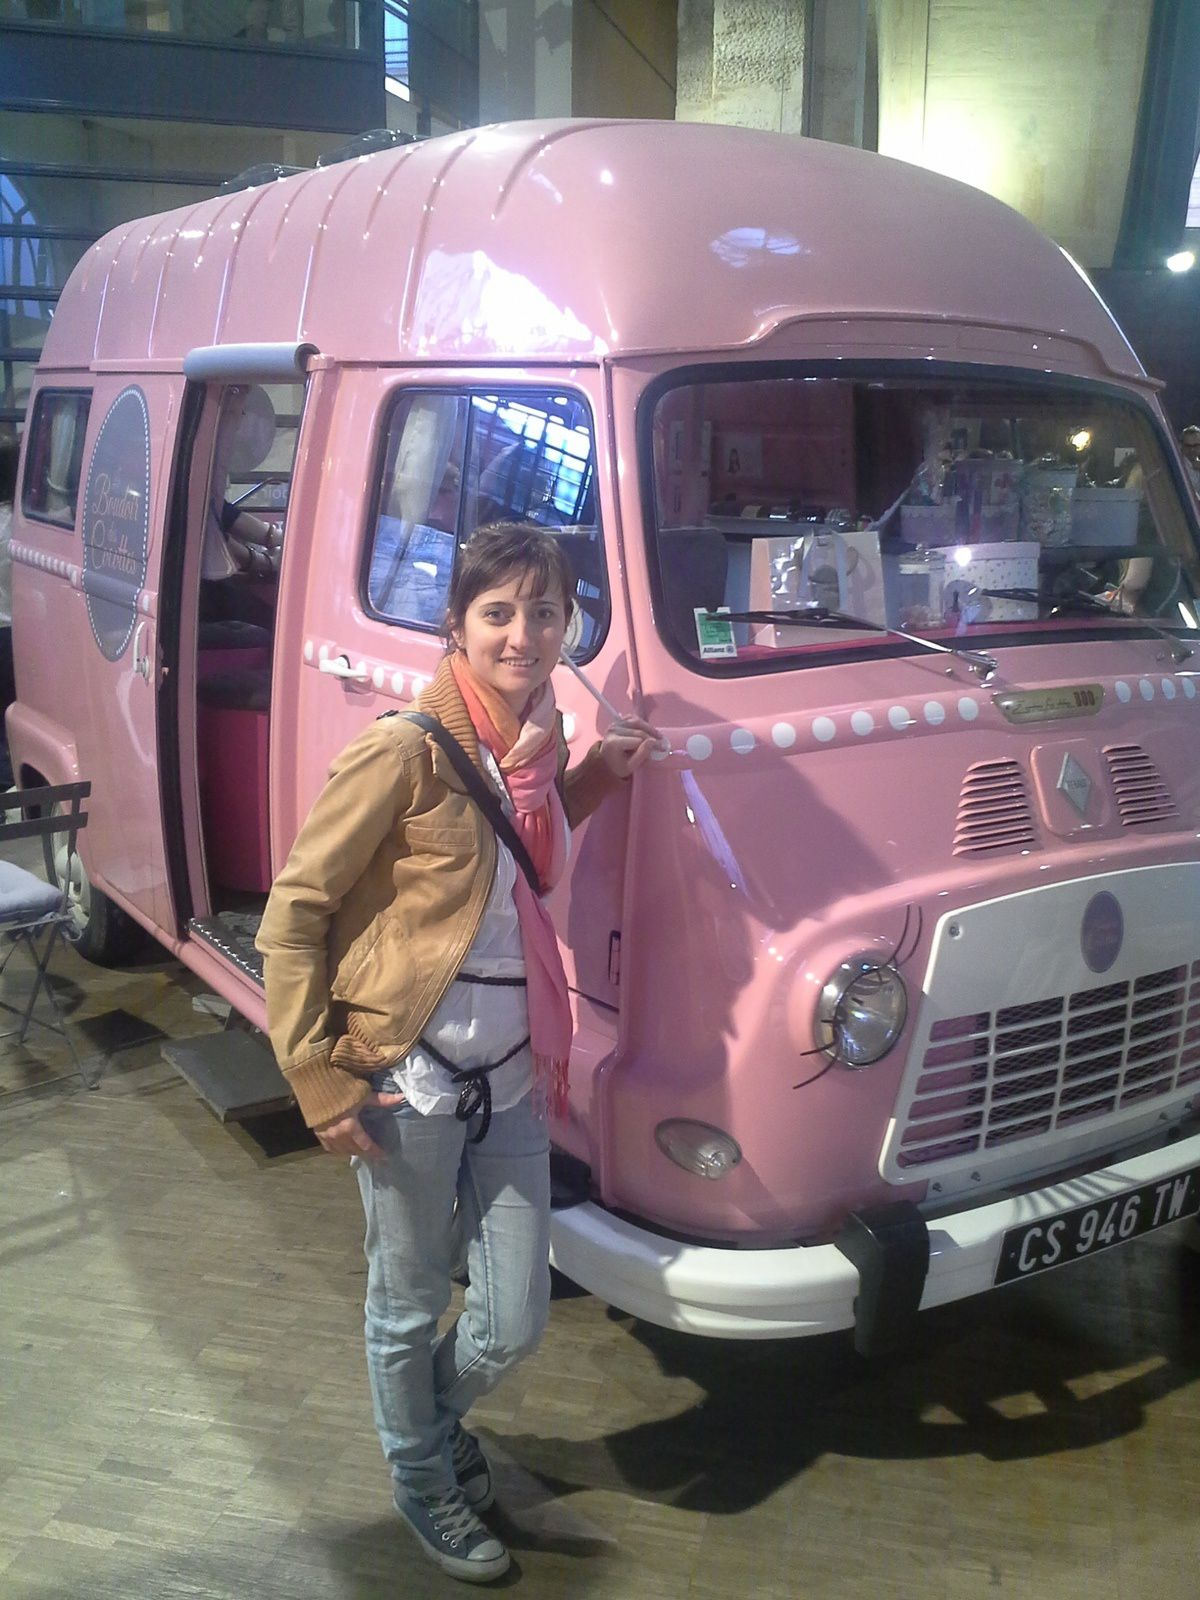 """Le """"boudoir des cocottes"""", the first beauty van itinerant for nail, make up and vintage hairstyle ~~~ Prima camionetta itinerante per smalto, trucco e parrucco stille vintage ~~~ Le premier van itinerant pour maquillage, pose de vernis et coiffure en style vintage"""